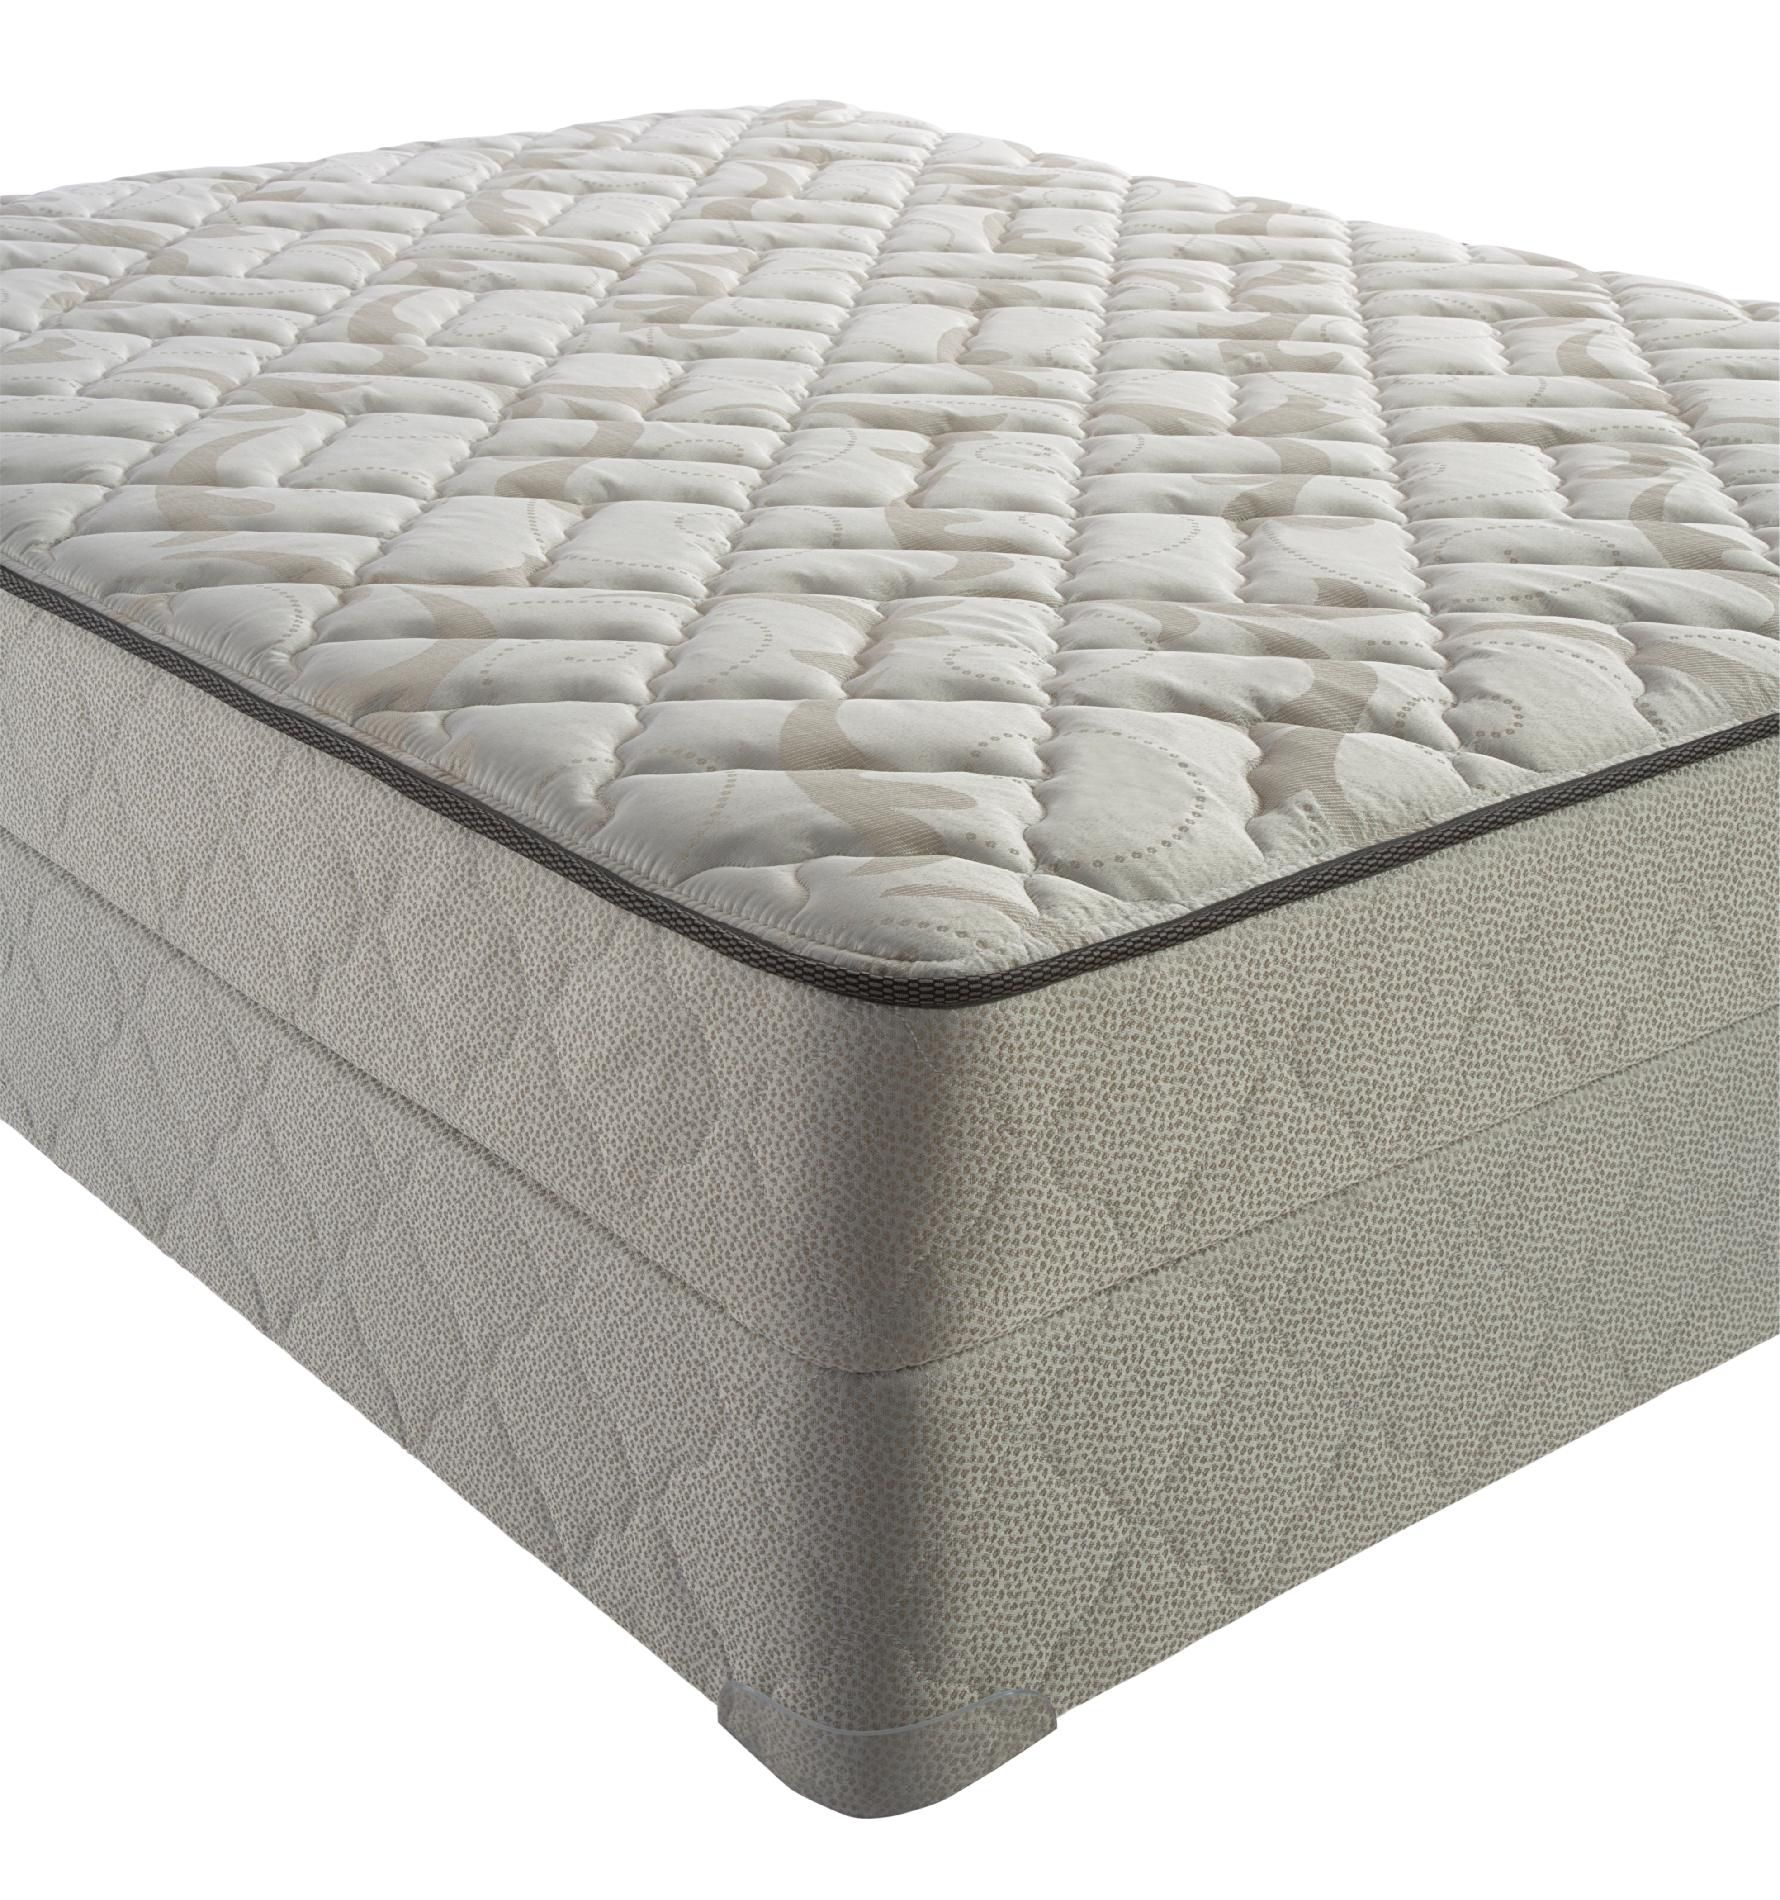 Madera-Select-II-Plush-Queen-Mattress-Only